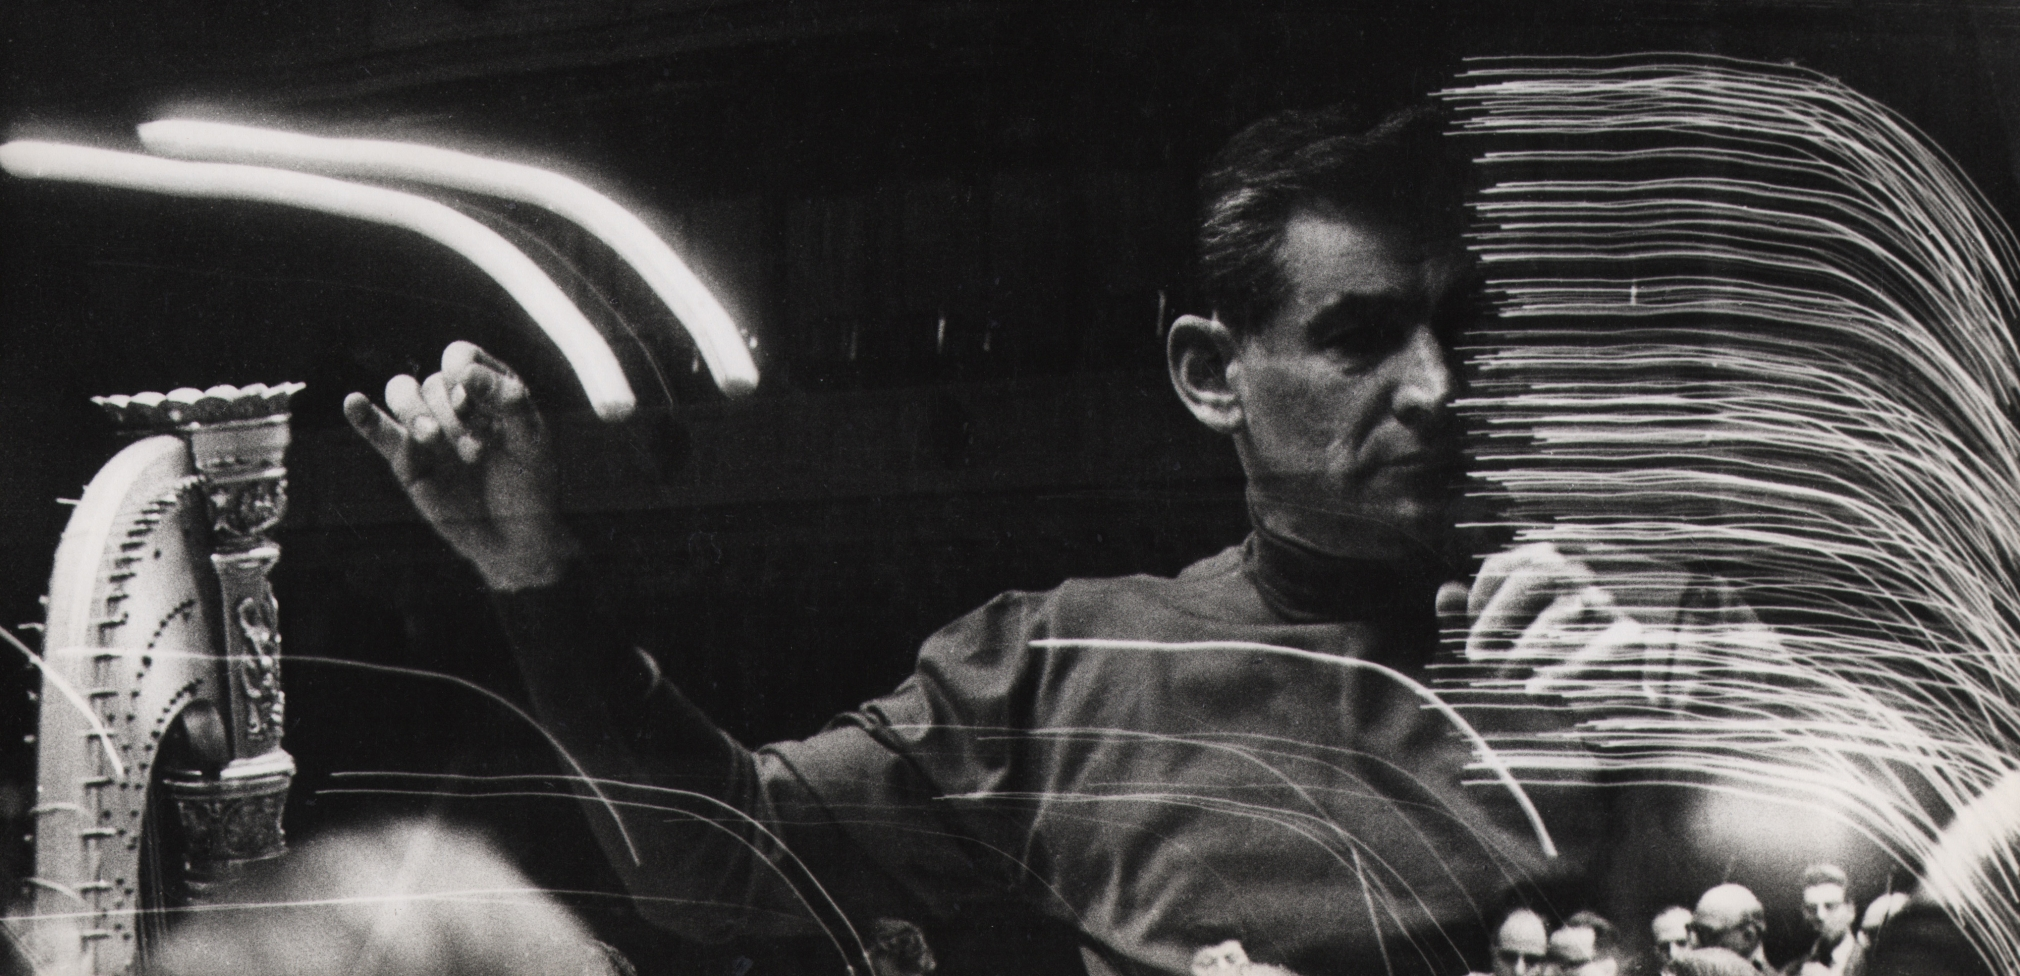 06. David Attie, Leonard Bernstein, rehearsal at Carnegie Hall, 1959. Multiple-exposure photograph featuring a man with arms raised as if conducting and streaks of light.